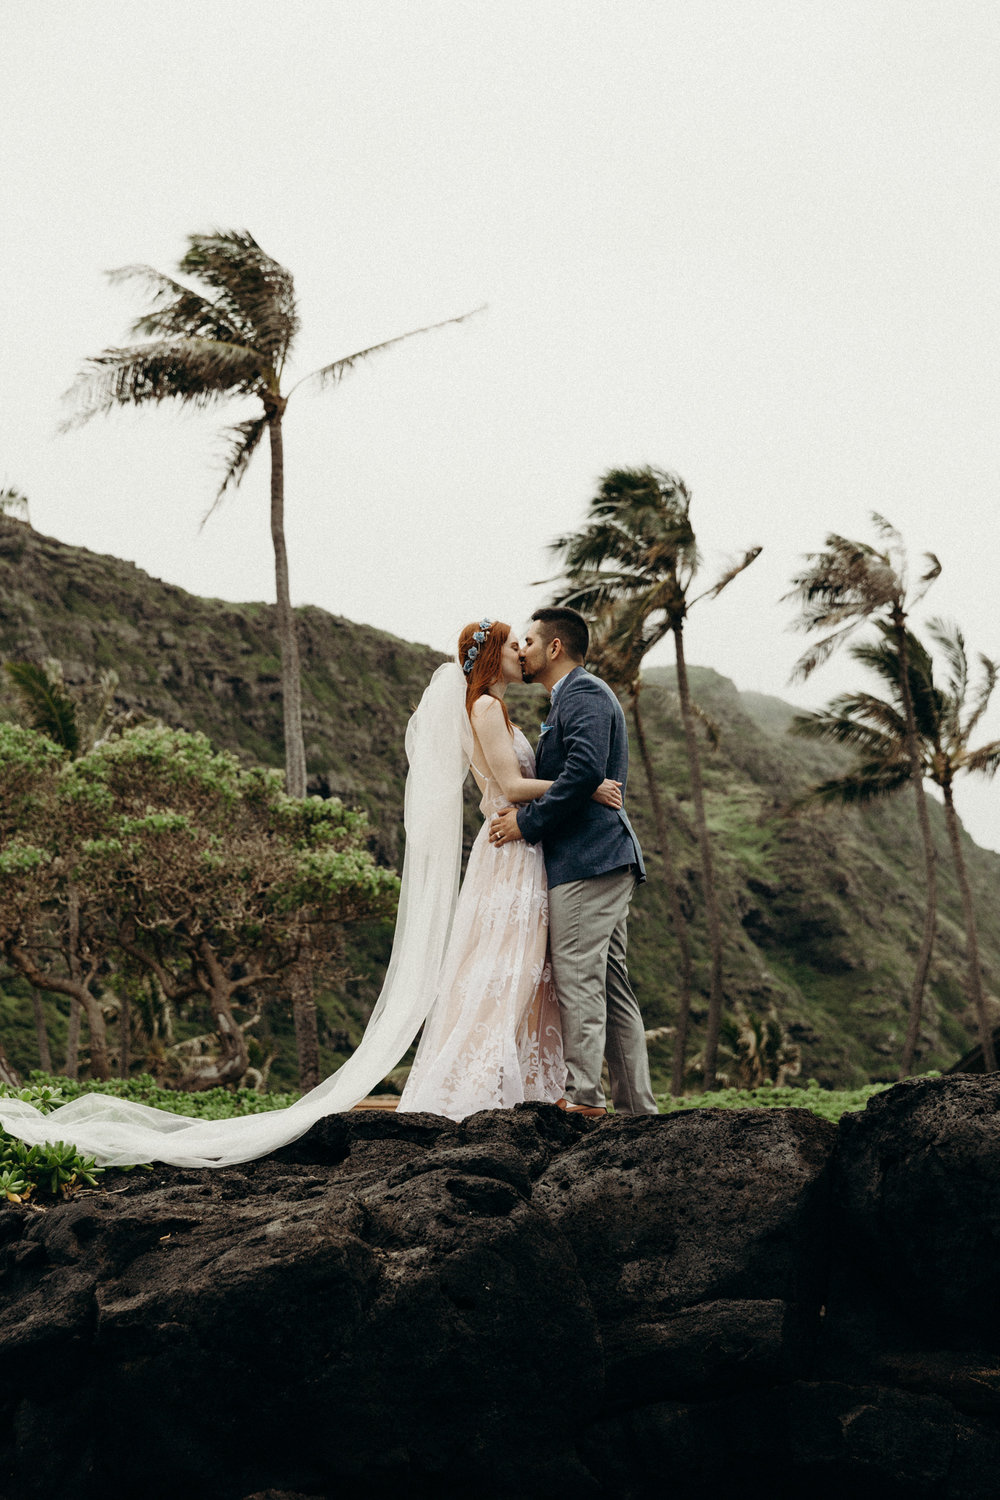 hawaii-wedding-photographer-keani-bakula-16.jpg